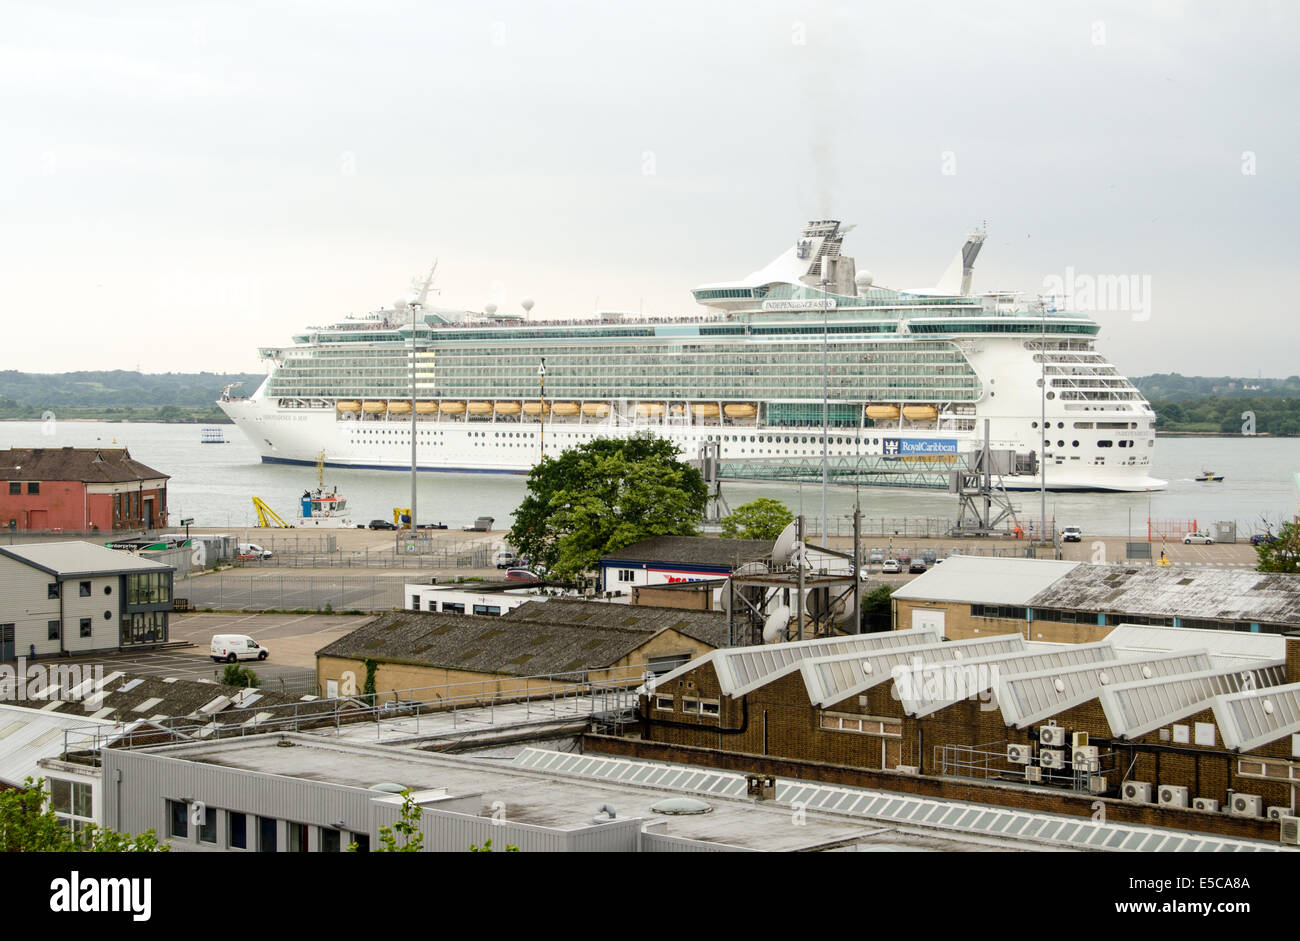 SOUTHAMPTON, UK  MAY 31, 2014:  The Royal Caribbean cruise ship Independence of the Seas leaving the port of Southampton. - Stock Image